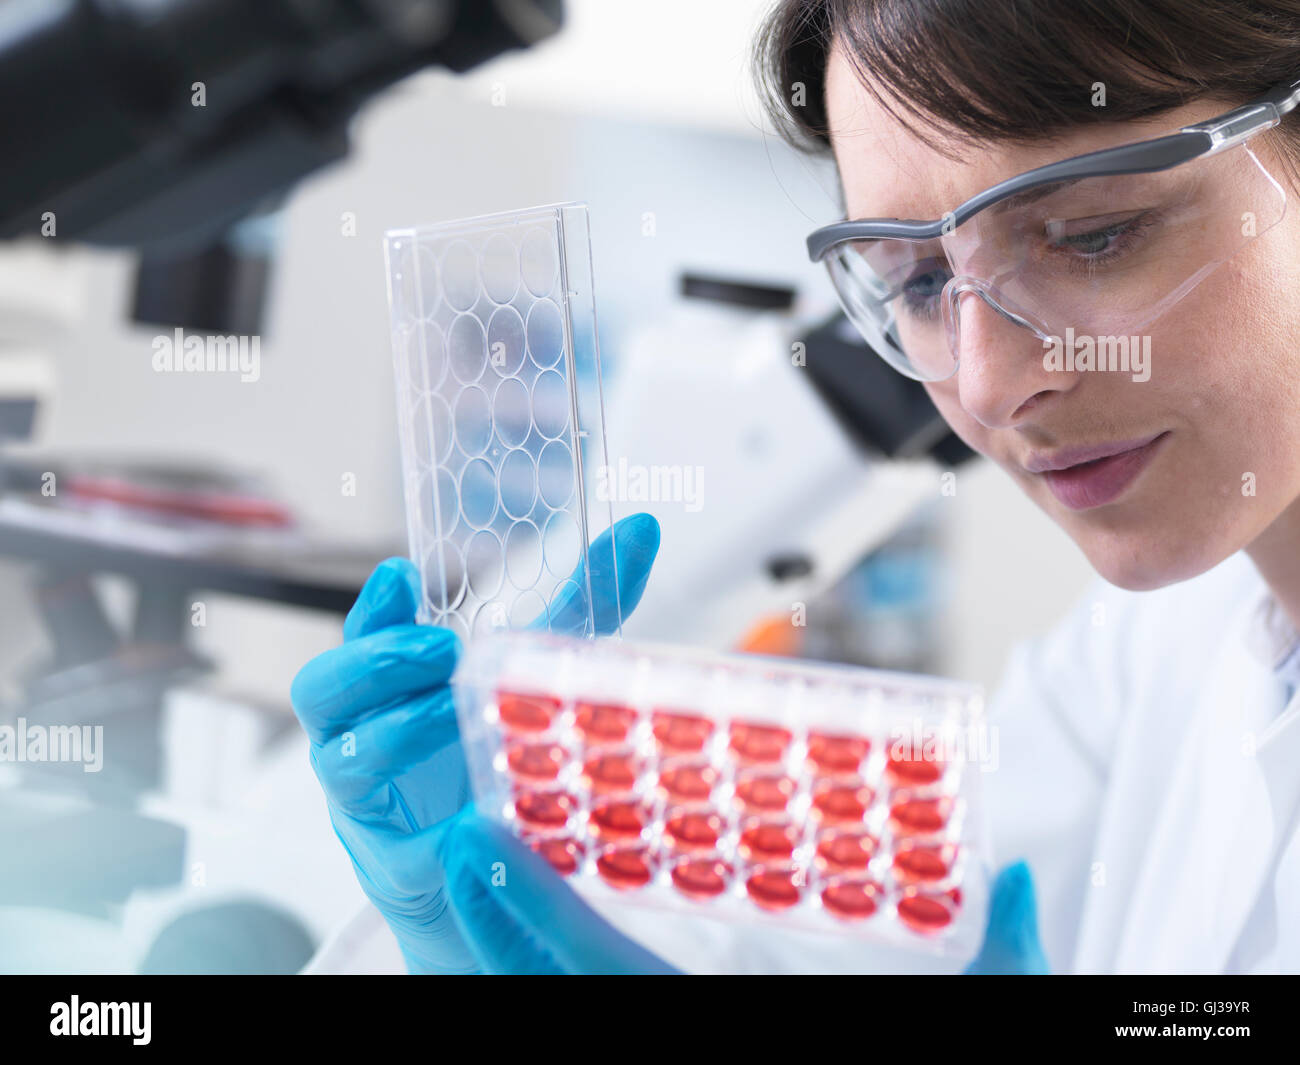 Scientist  viewing experimental cultures growing in multiwell tray in laboratory - Stock Image